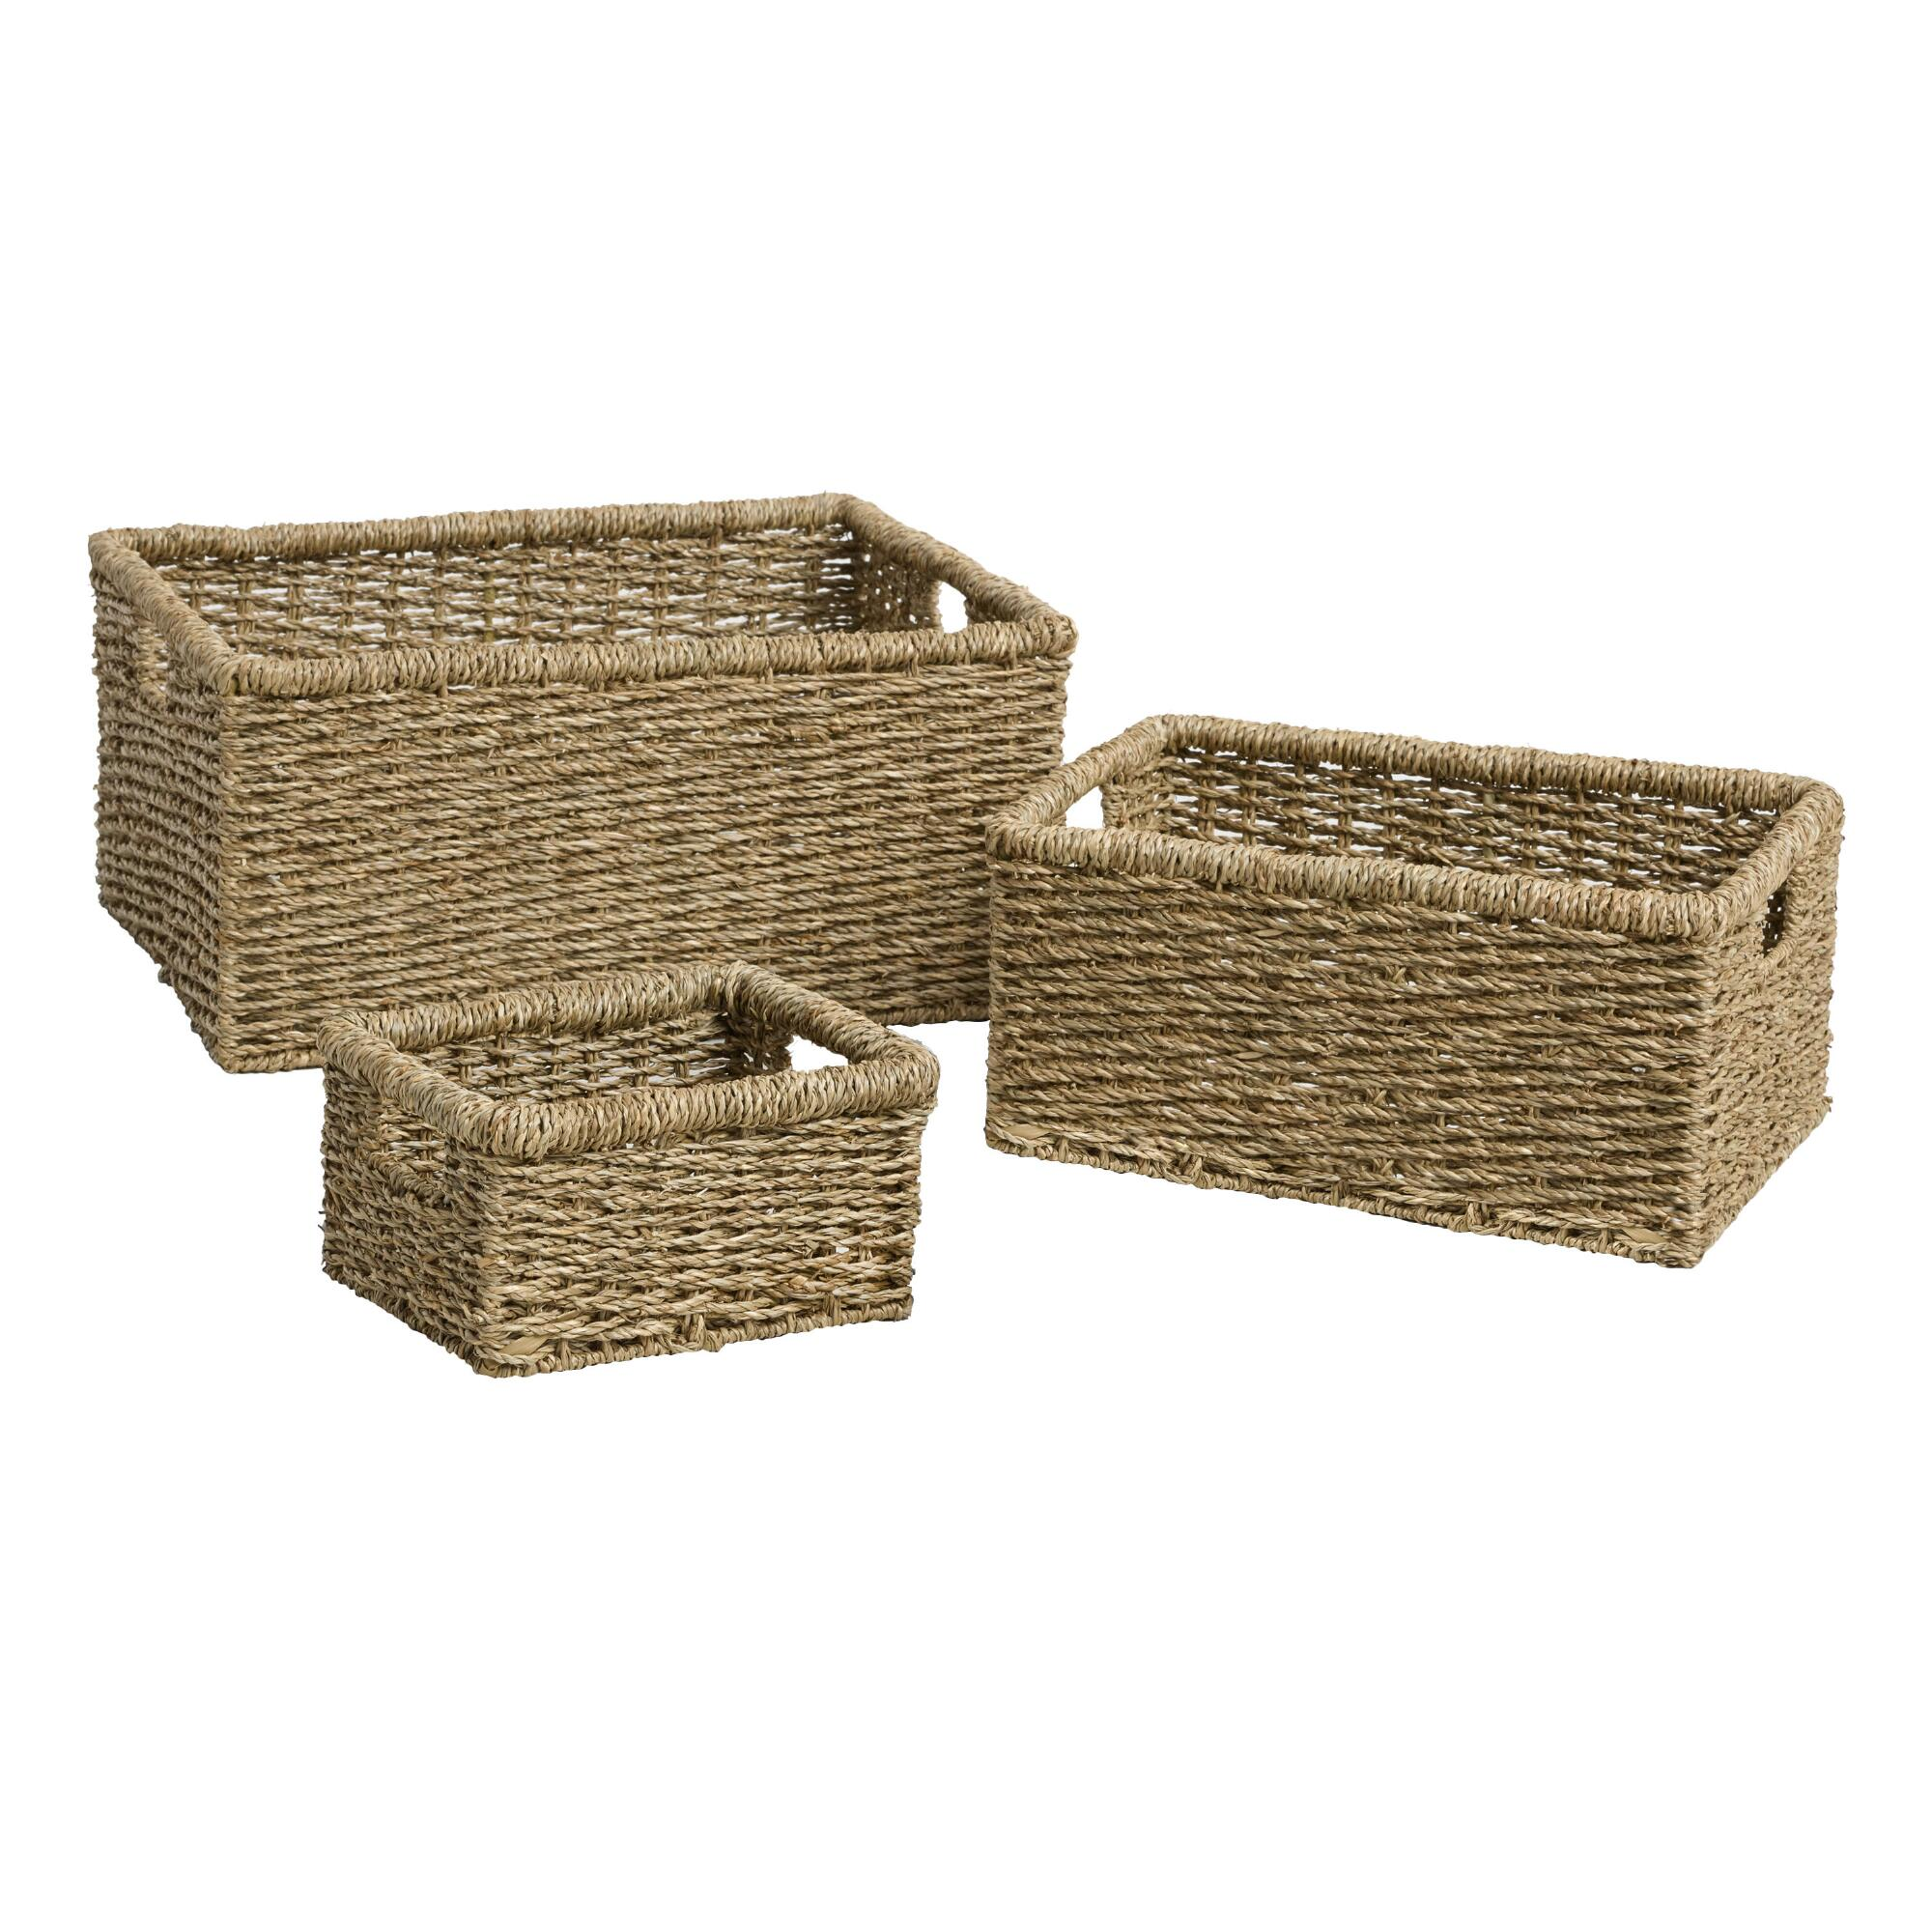 Natural Seagrass Trista Utility Baskets - Small by World Market Small